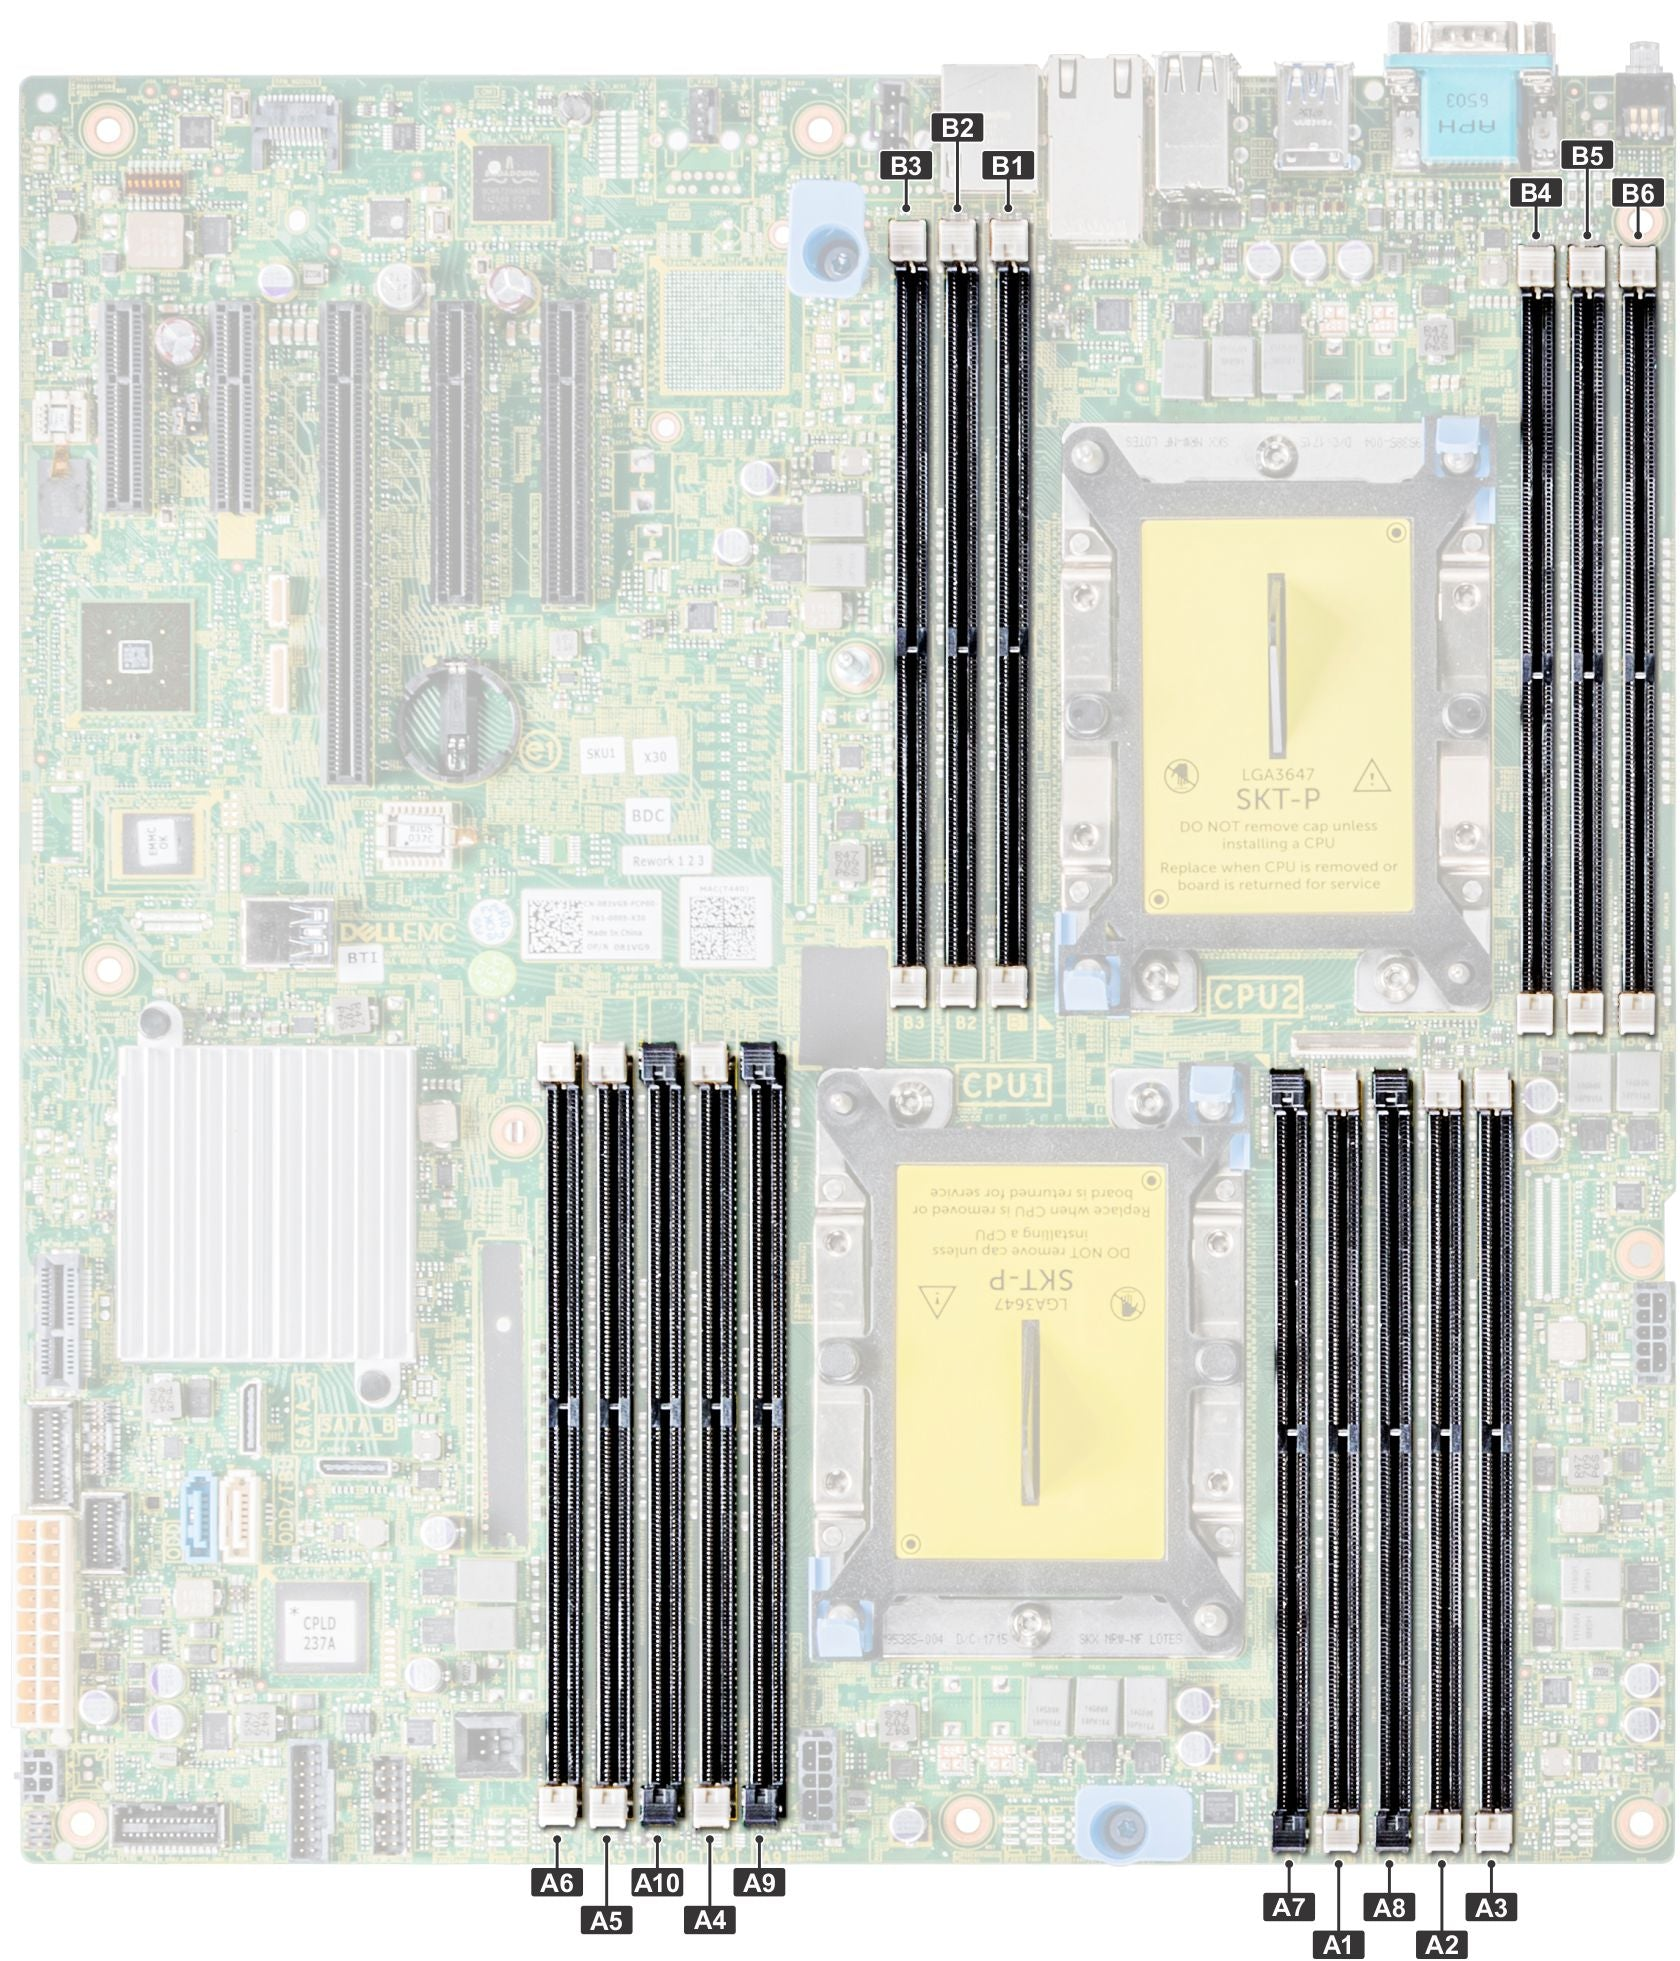 Dell PowerEdge T440 Memory Configuration